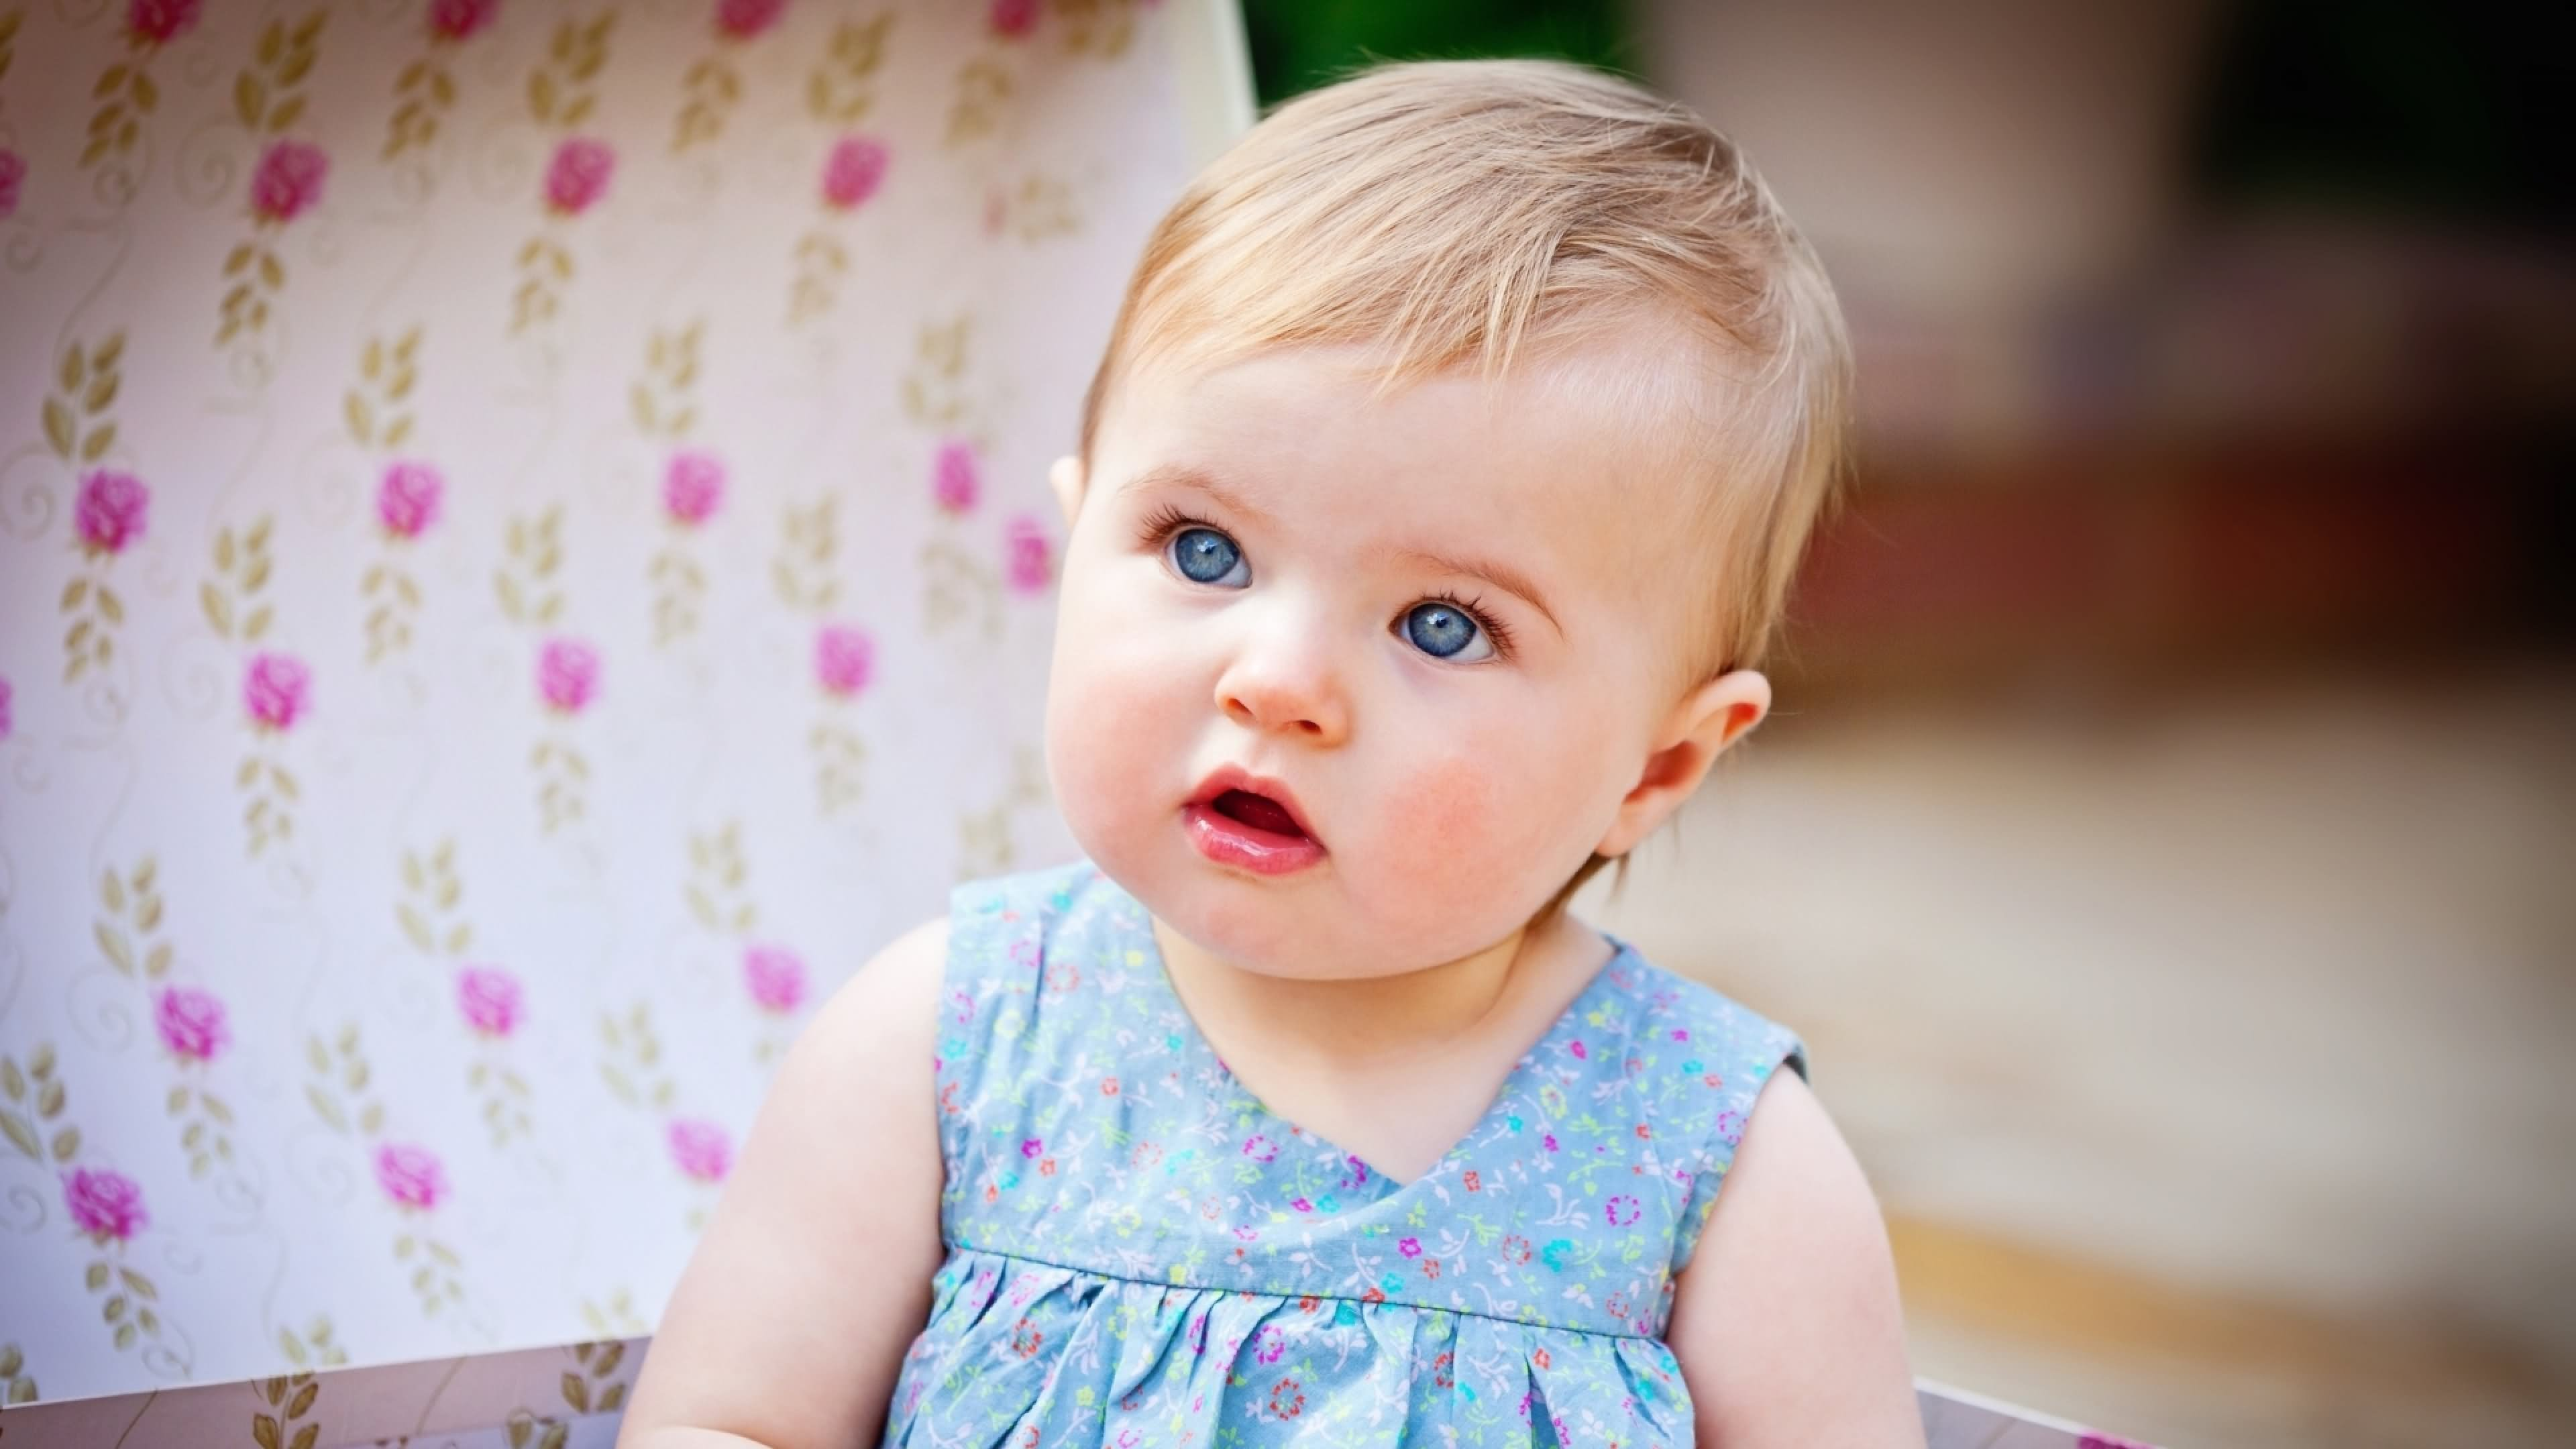 25 very cute babies pictures cute baby girl with blue eyes hd wallpaper altavistaventures Choice Image